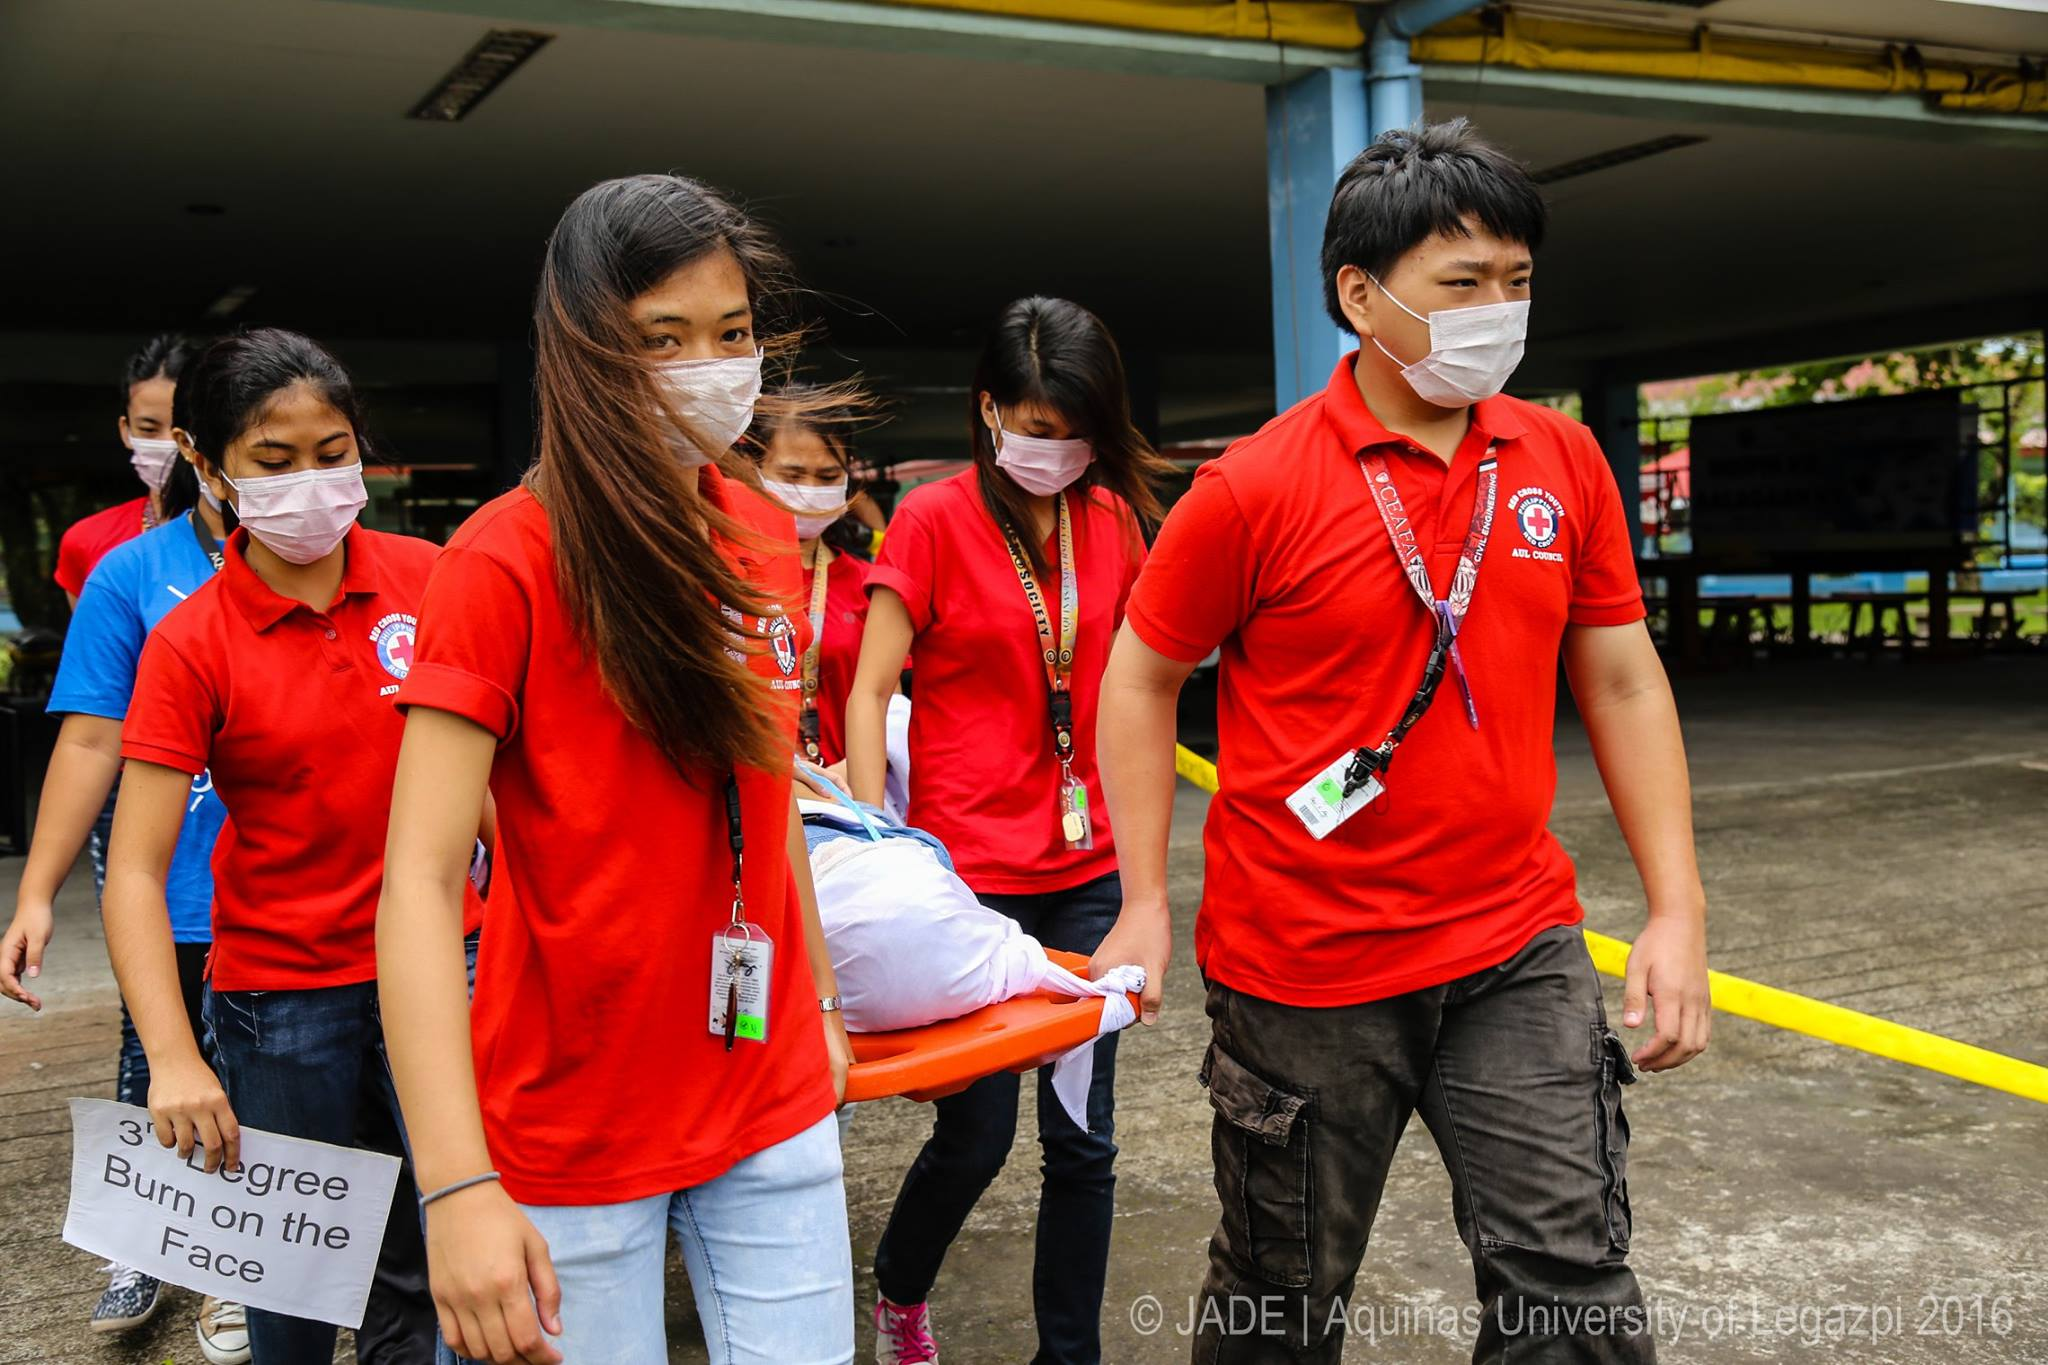 Fire, Earthquake, & Mass Casualty Drill